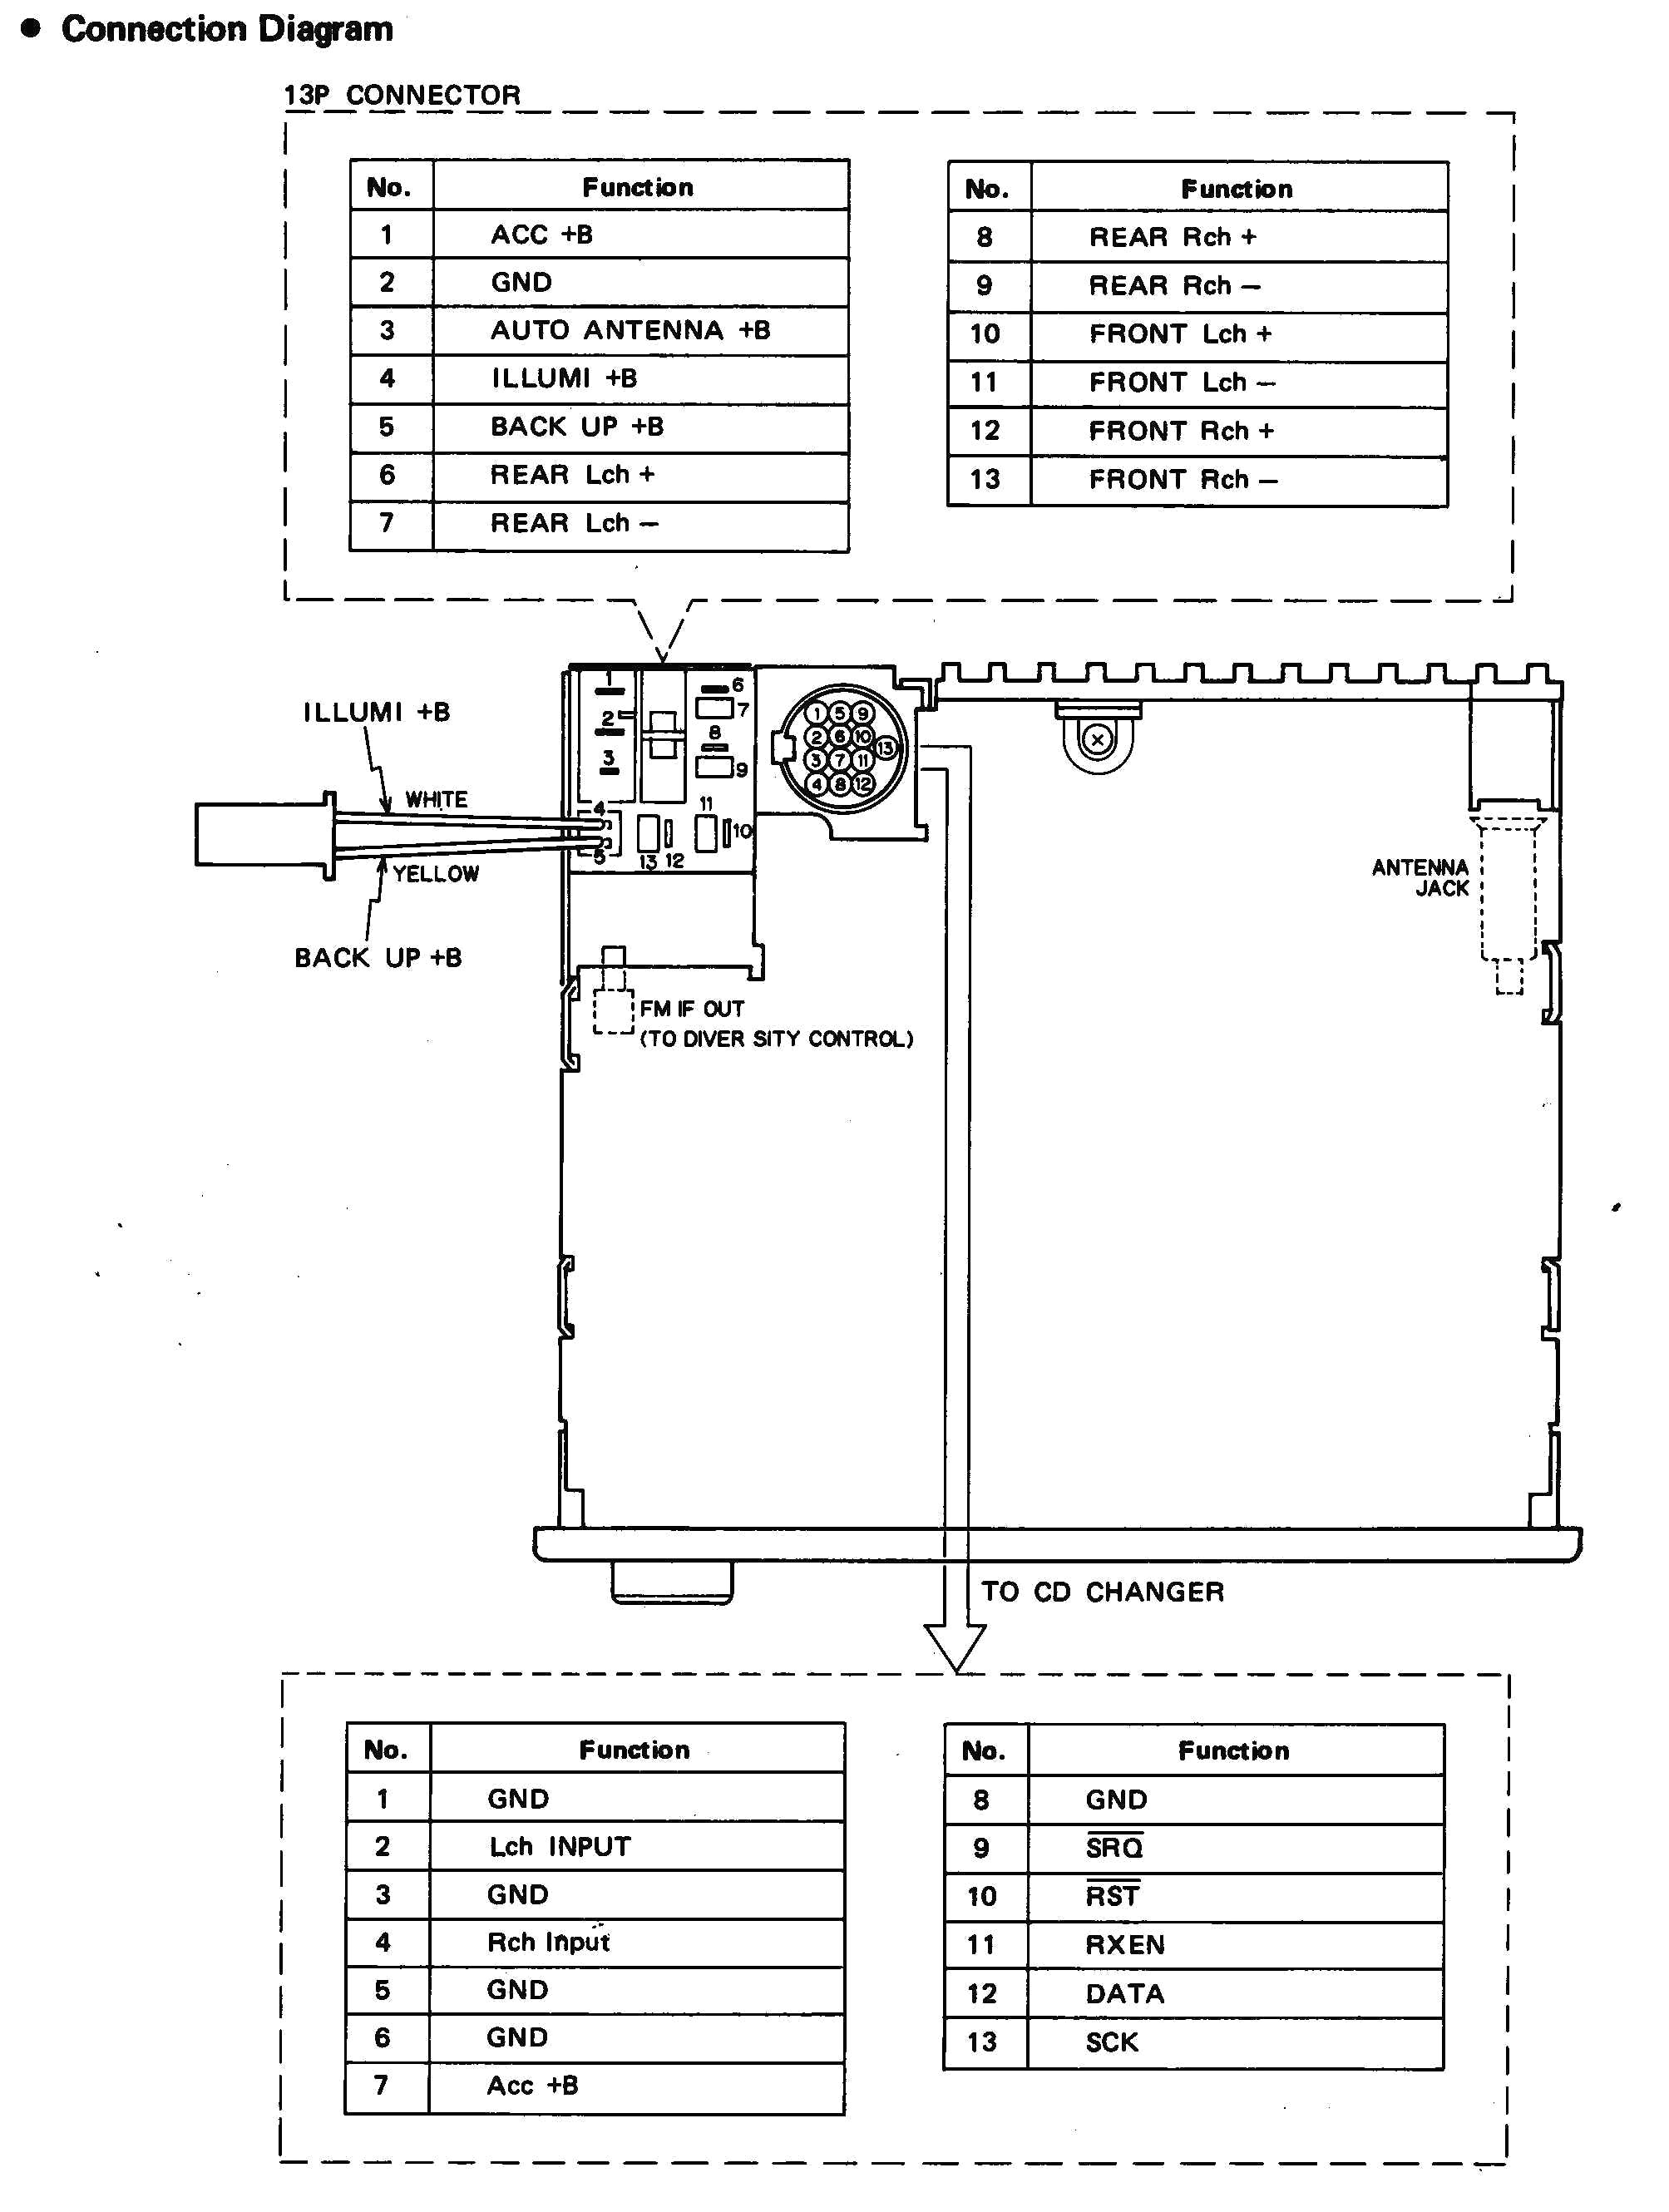 Wiring Diagrams For Car Audio Honda Stereo Diagram Blurts Harness Of Related Post